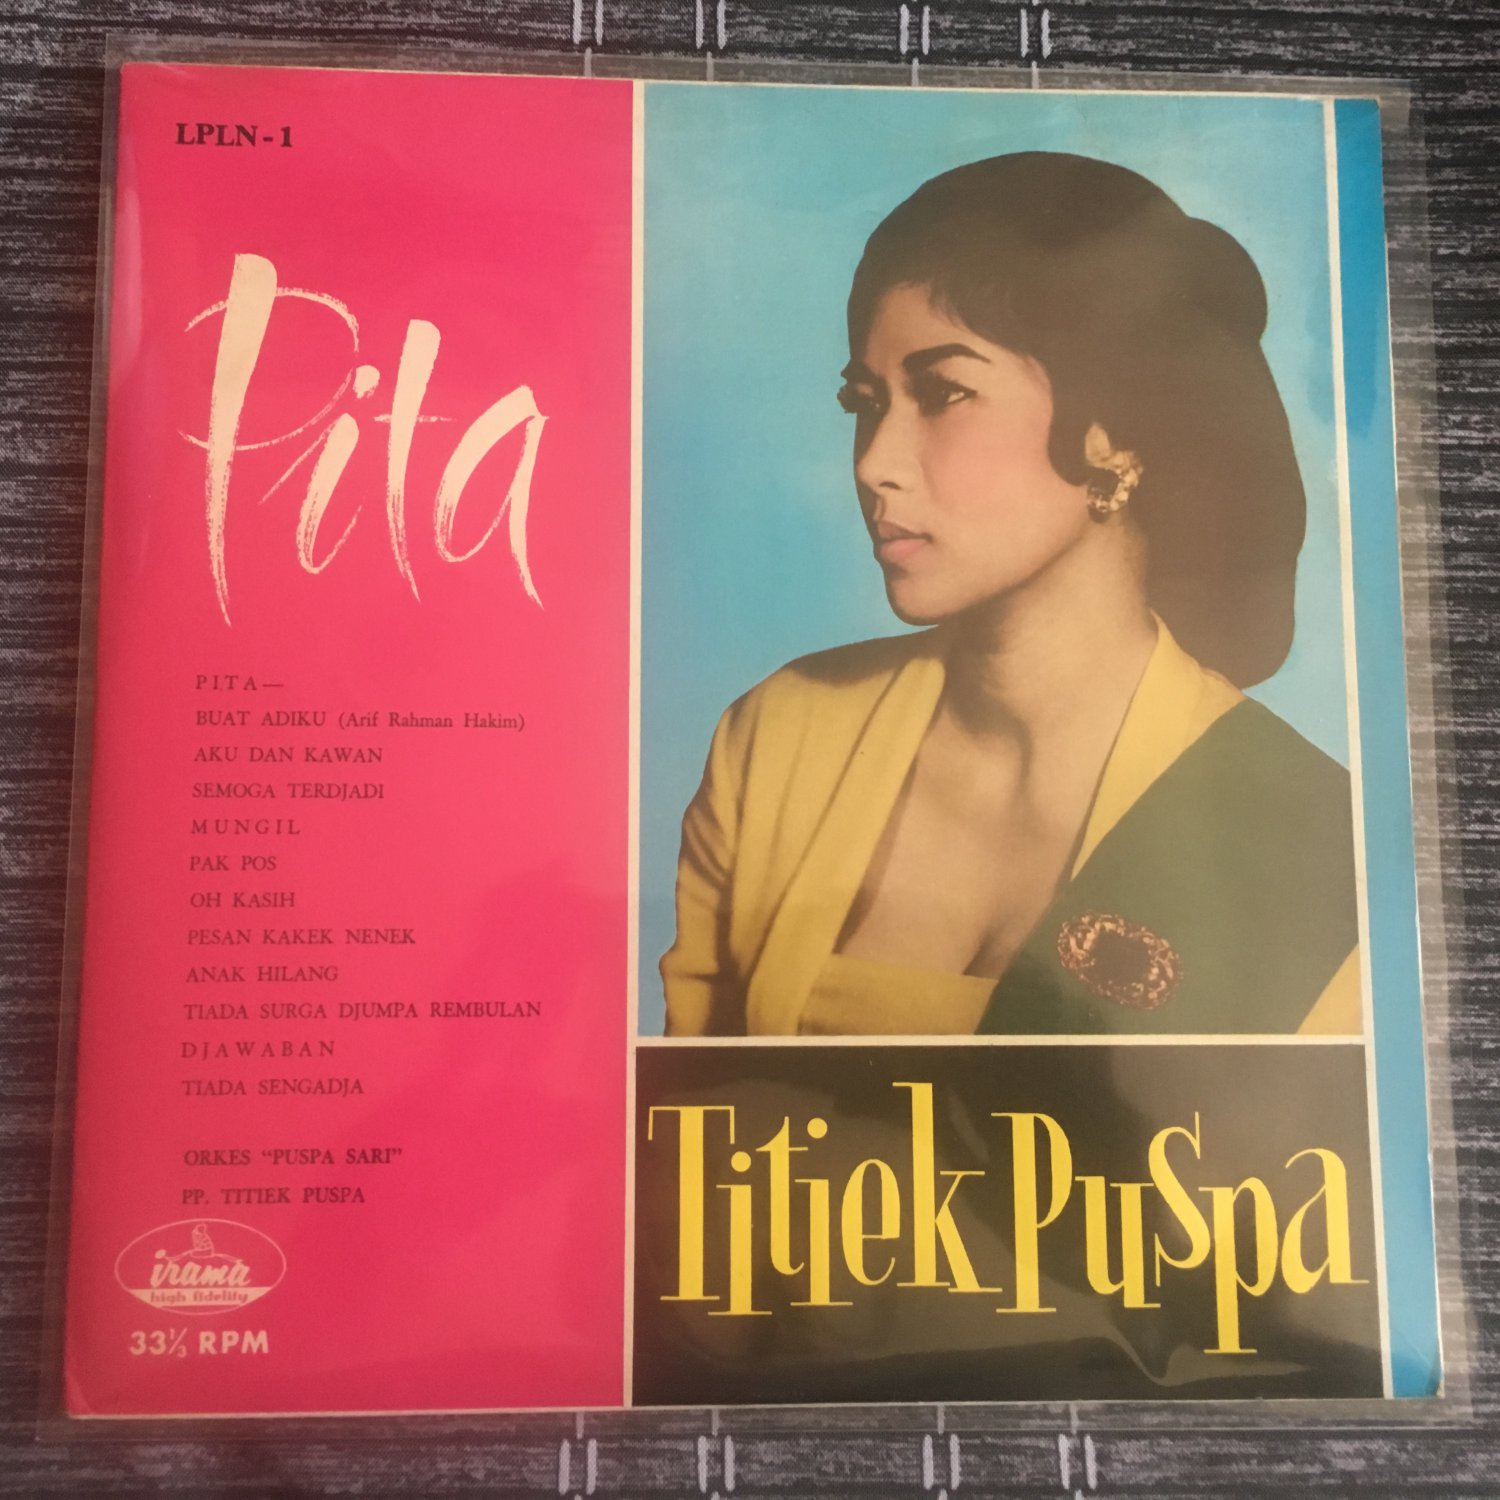 TITIEK PUSPA LP pita INDONESIA 60's GARAGE PSYCH IRAMA mp3 LISTEN